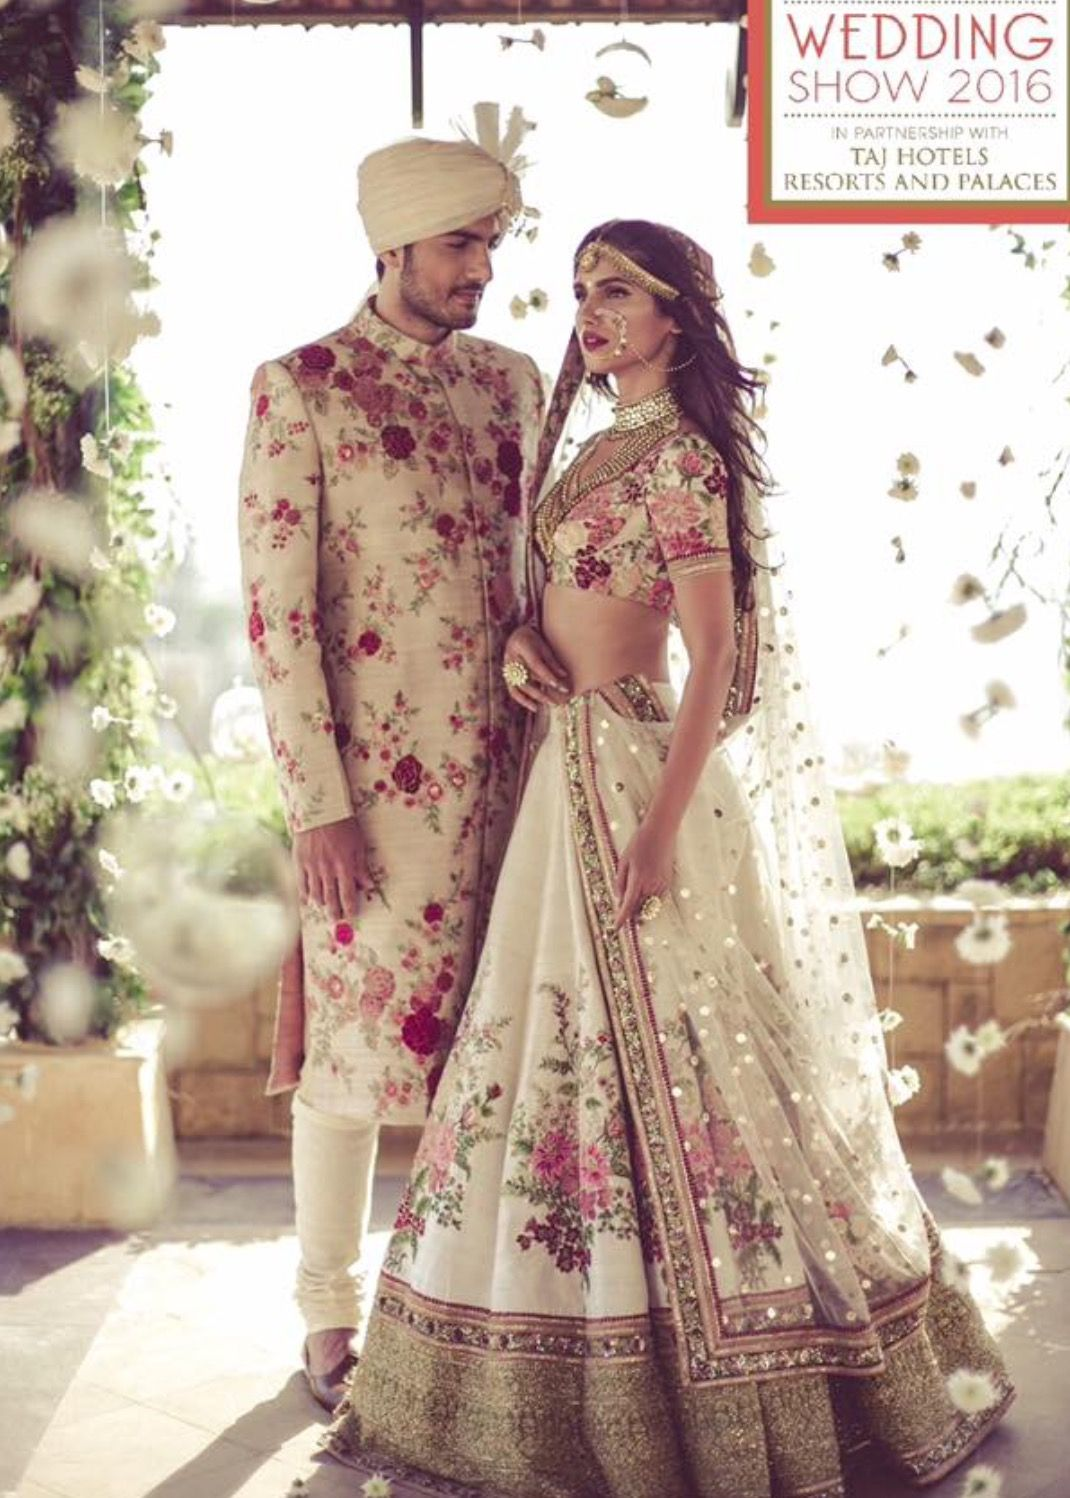 Beautiful Traditional Indian Wedding Gown Indian Bridal Wear Indian Wedding Dress Indian Wedding Outfits